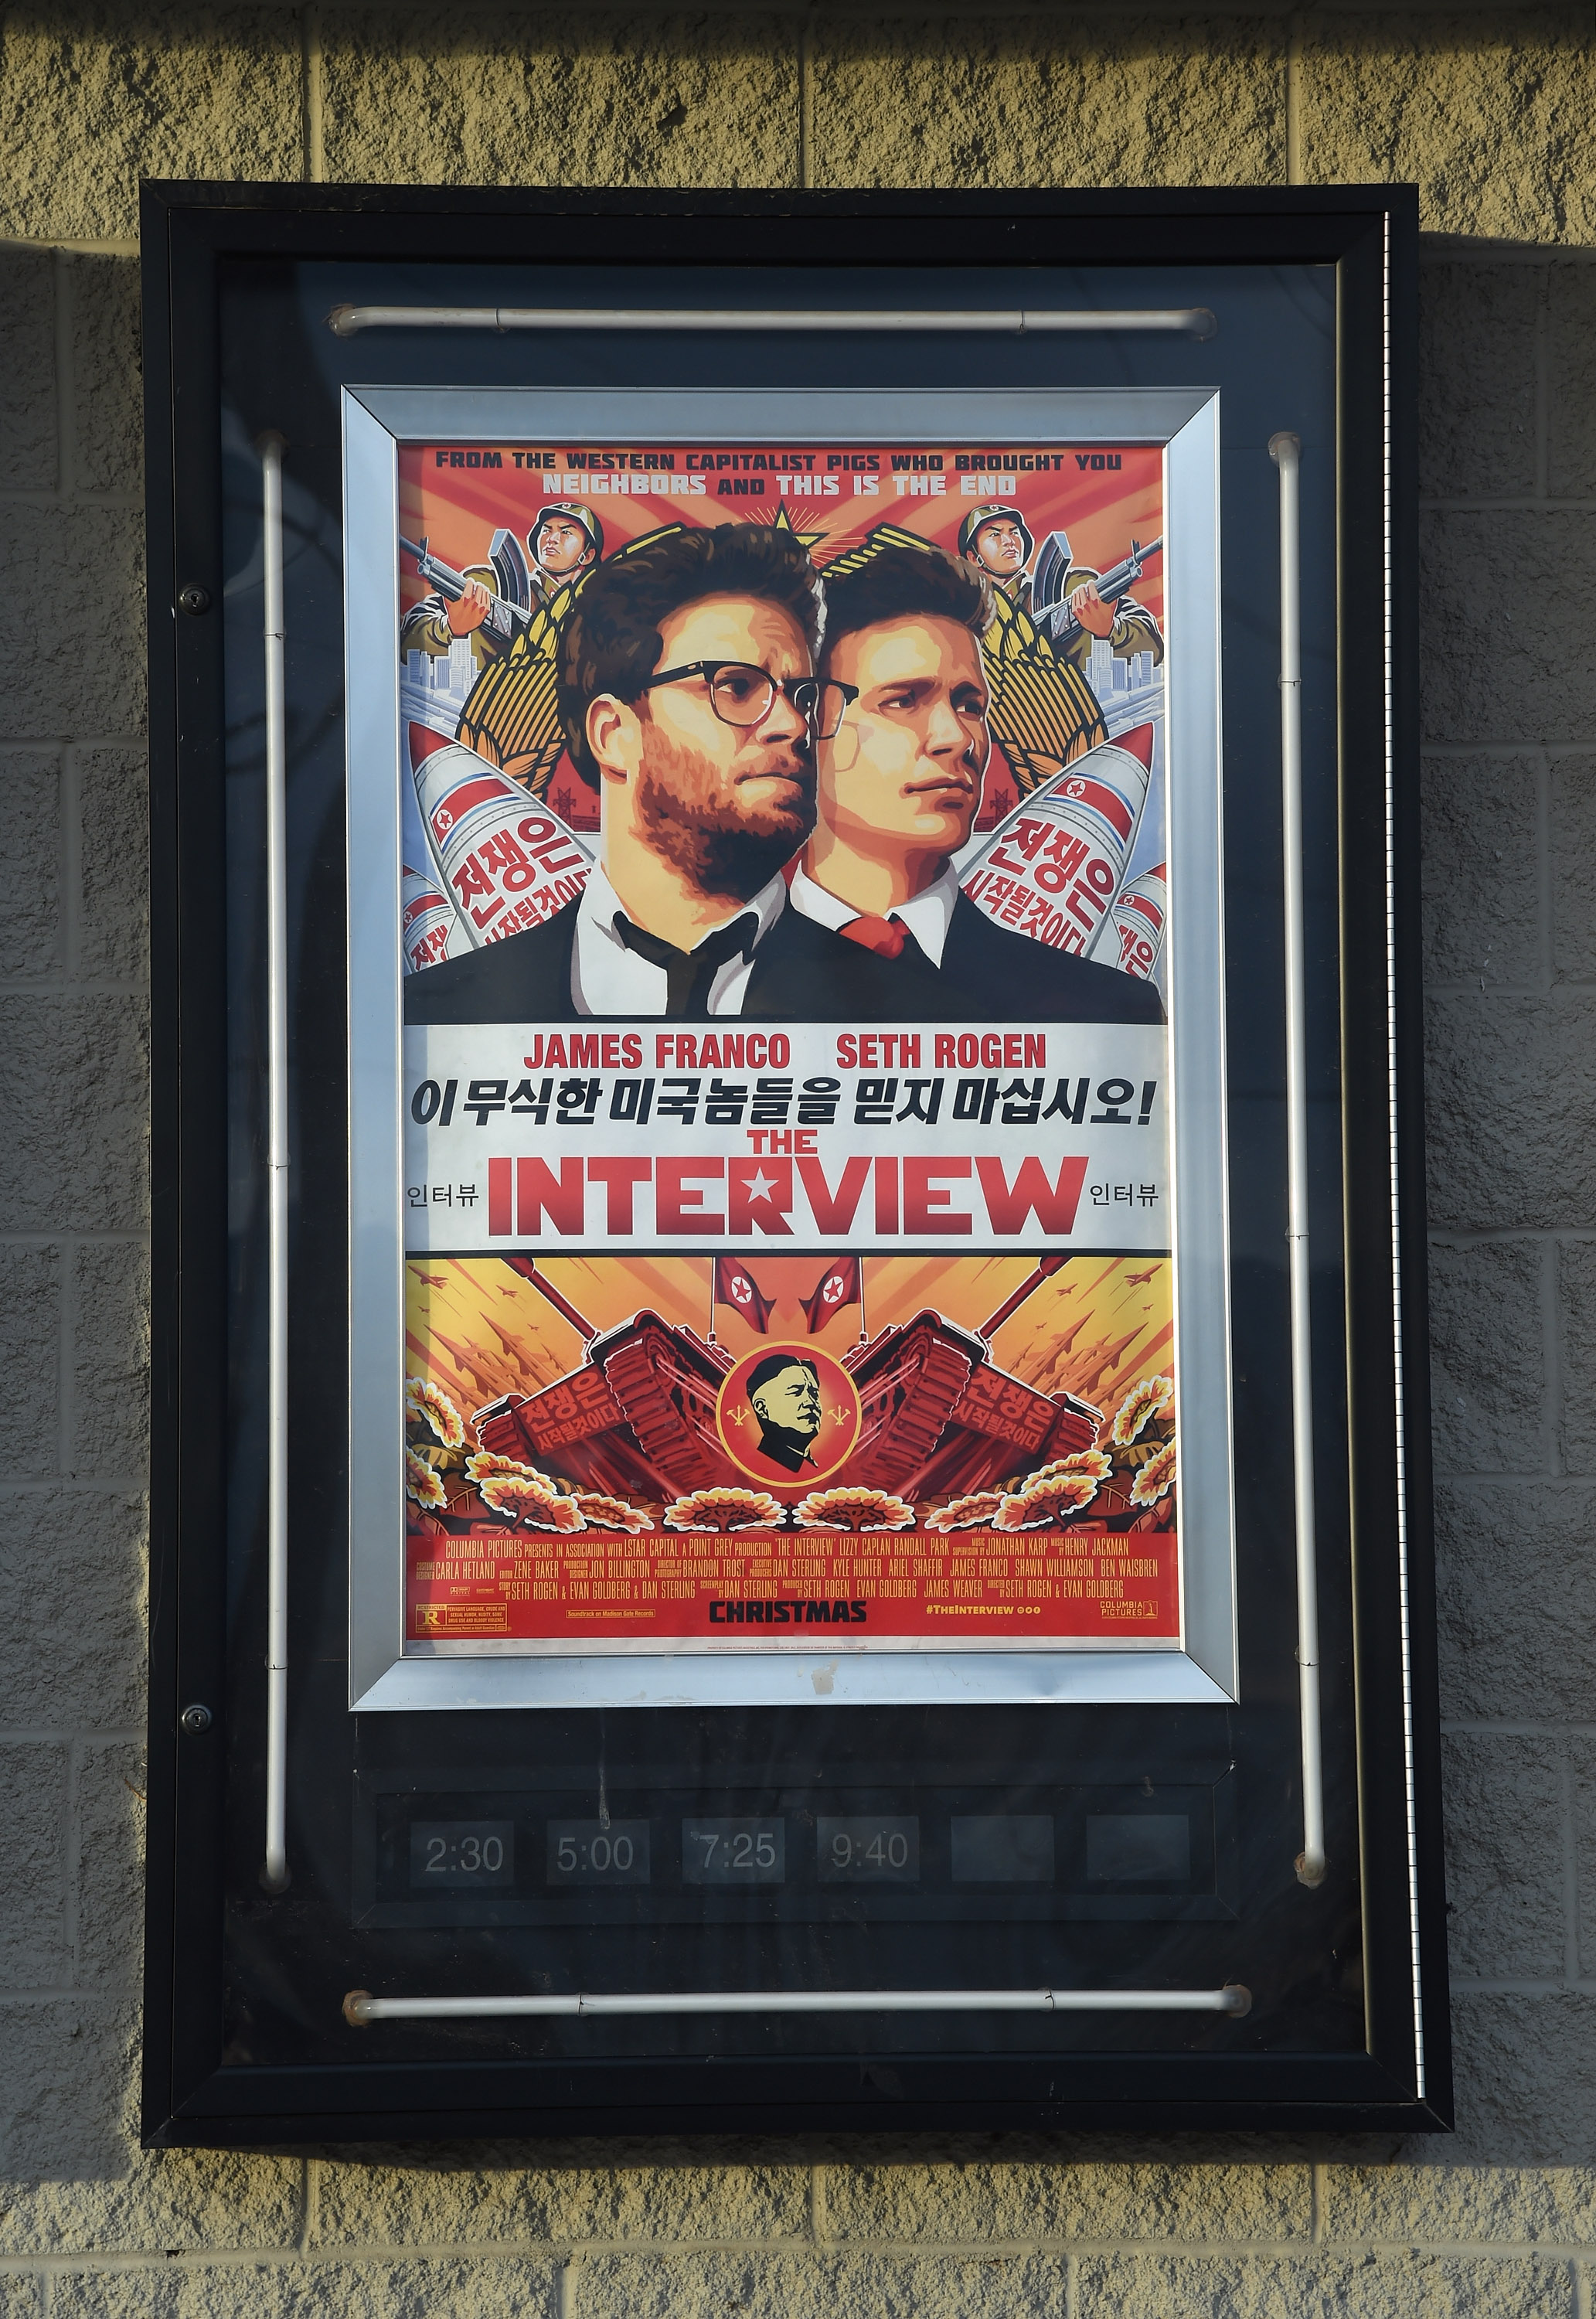 A movie poster for  The Interview  is displayed outside the Megaplex Theatres - Stadium 6 on Dec. 25, 2014 in Mesquite, Nev.